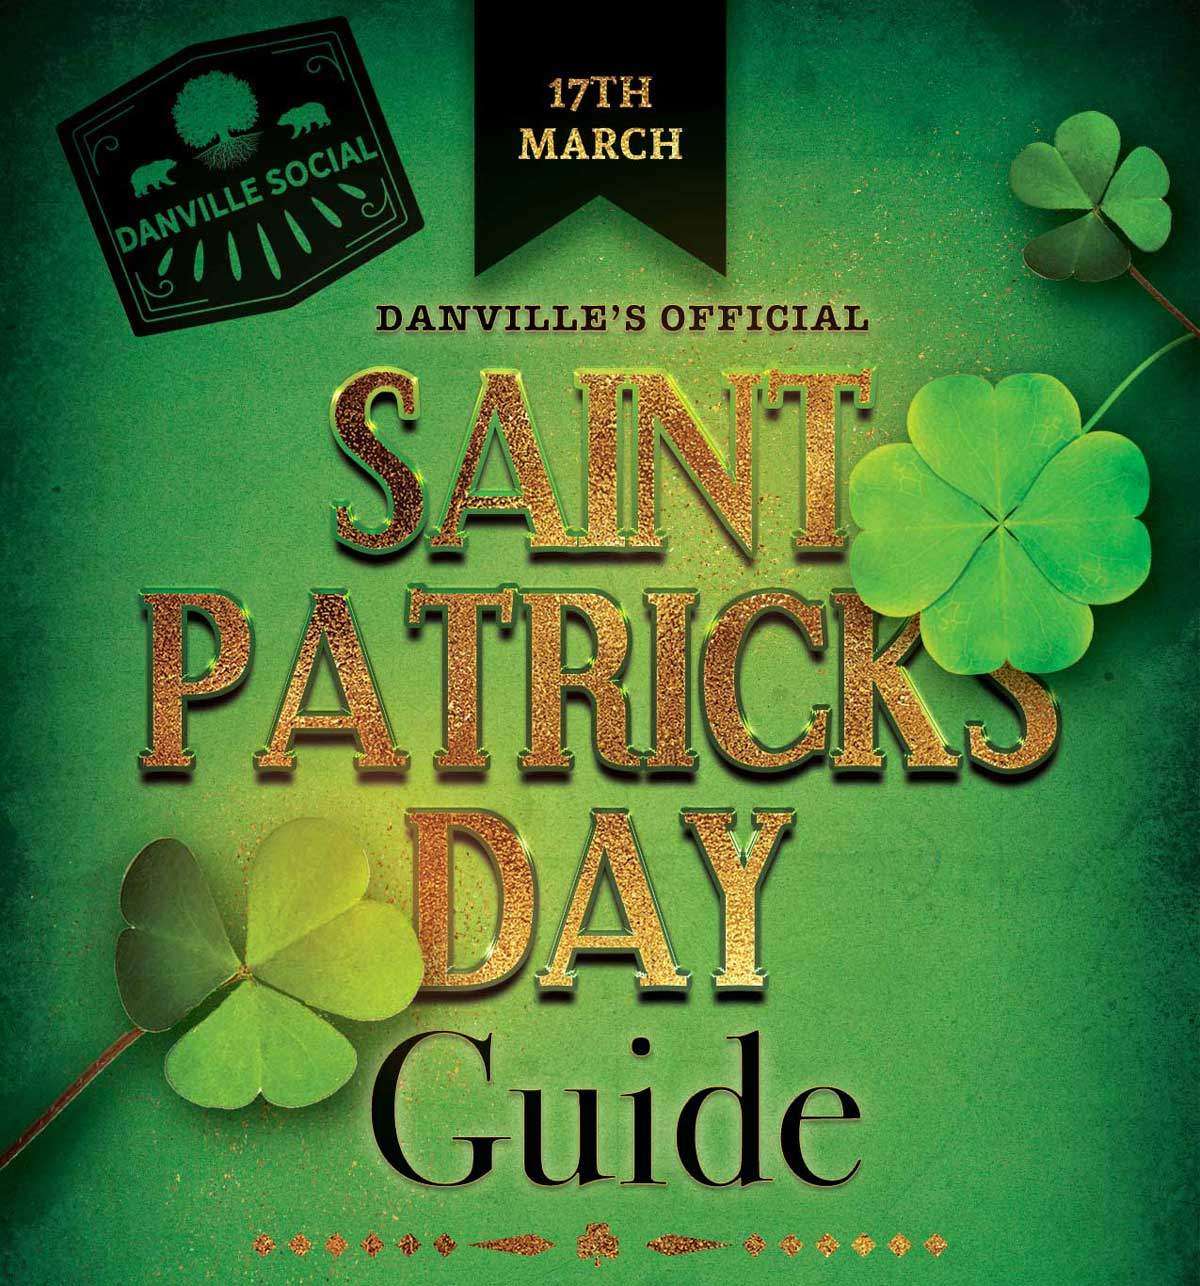 st patricks day in danville ca guide